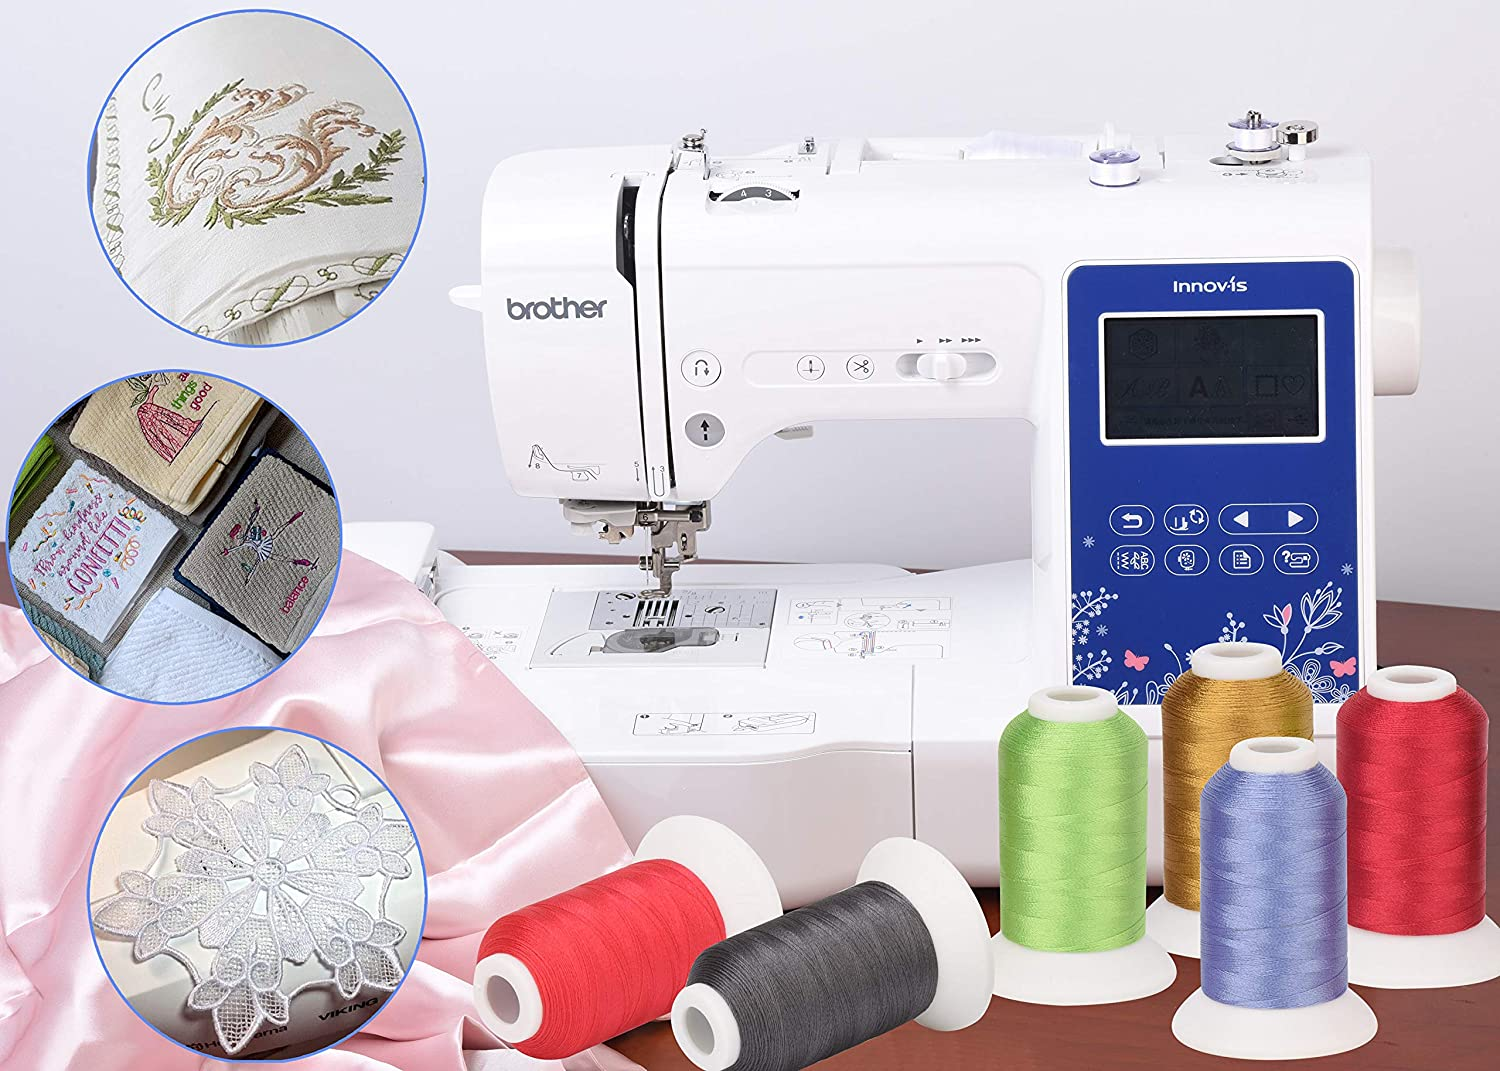 Simthread 60WT Sewing Embroidery Machine Thread Kit 40 Colors 1100 Yards Spool for Brother Janome etc sewing embroidery machines